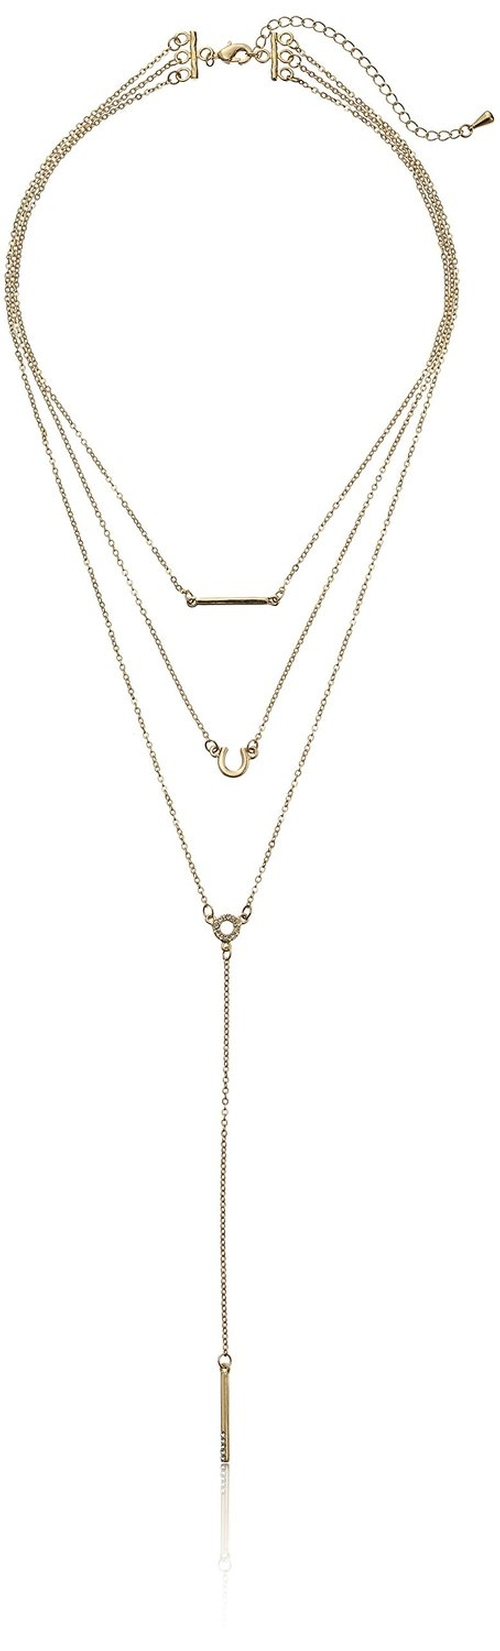 Triple-Layer Charm Necklace by Jules Smith in How To Get Away With Murder - Season 2 Episode 8